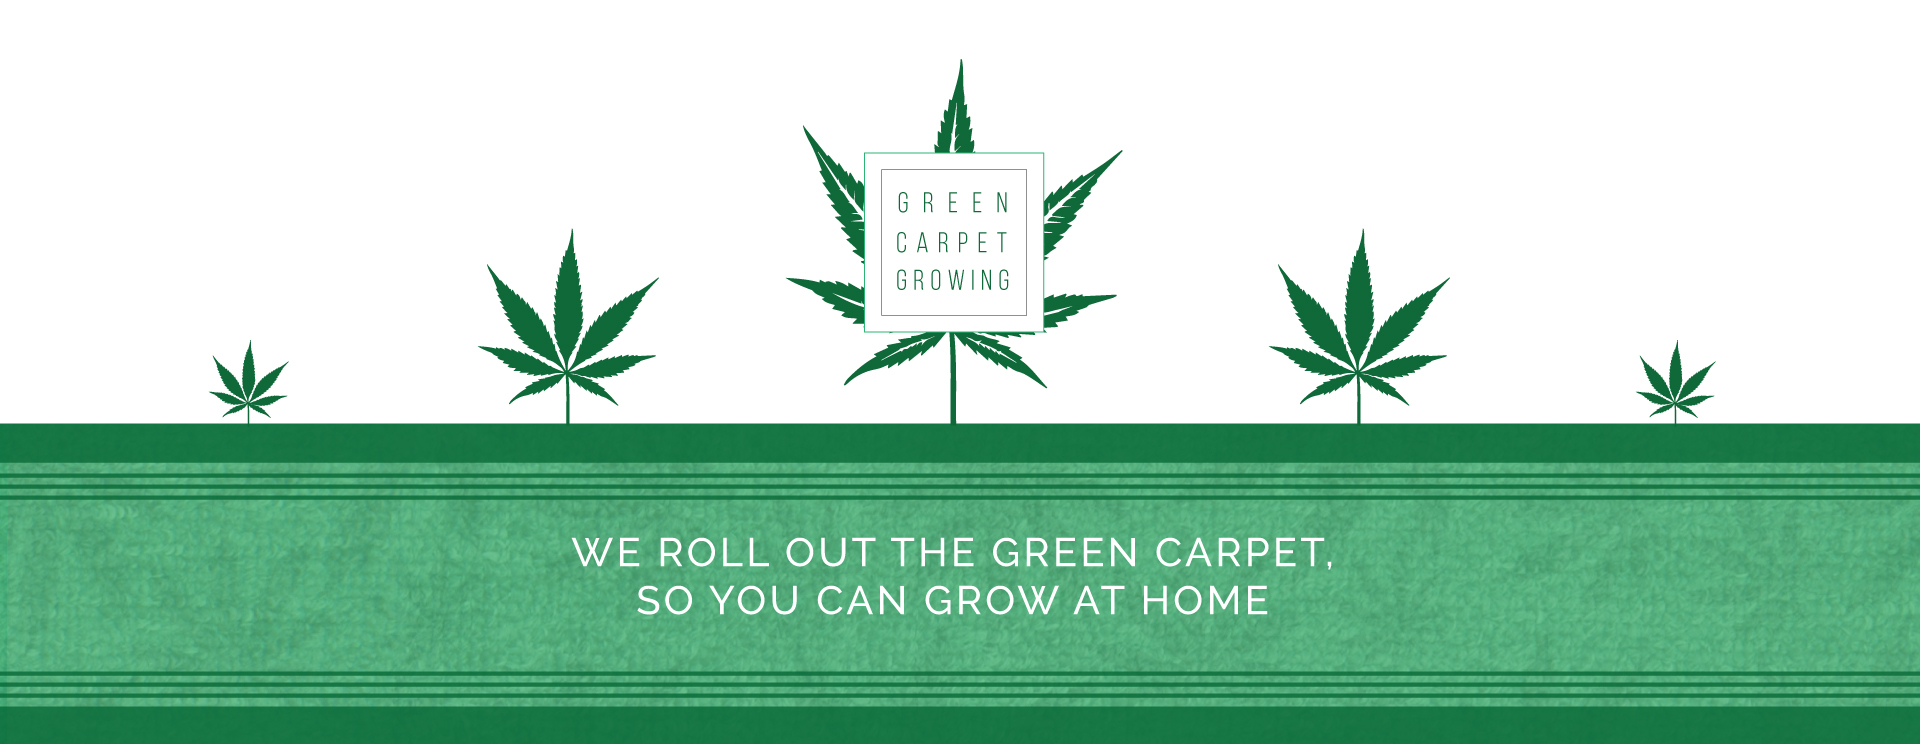 Green carpet growing learn how to grow marijuana plants at home nvjuhfo Image collections